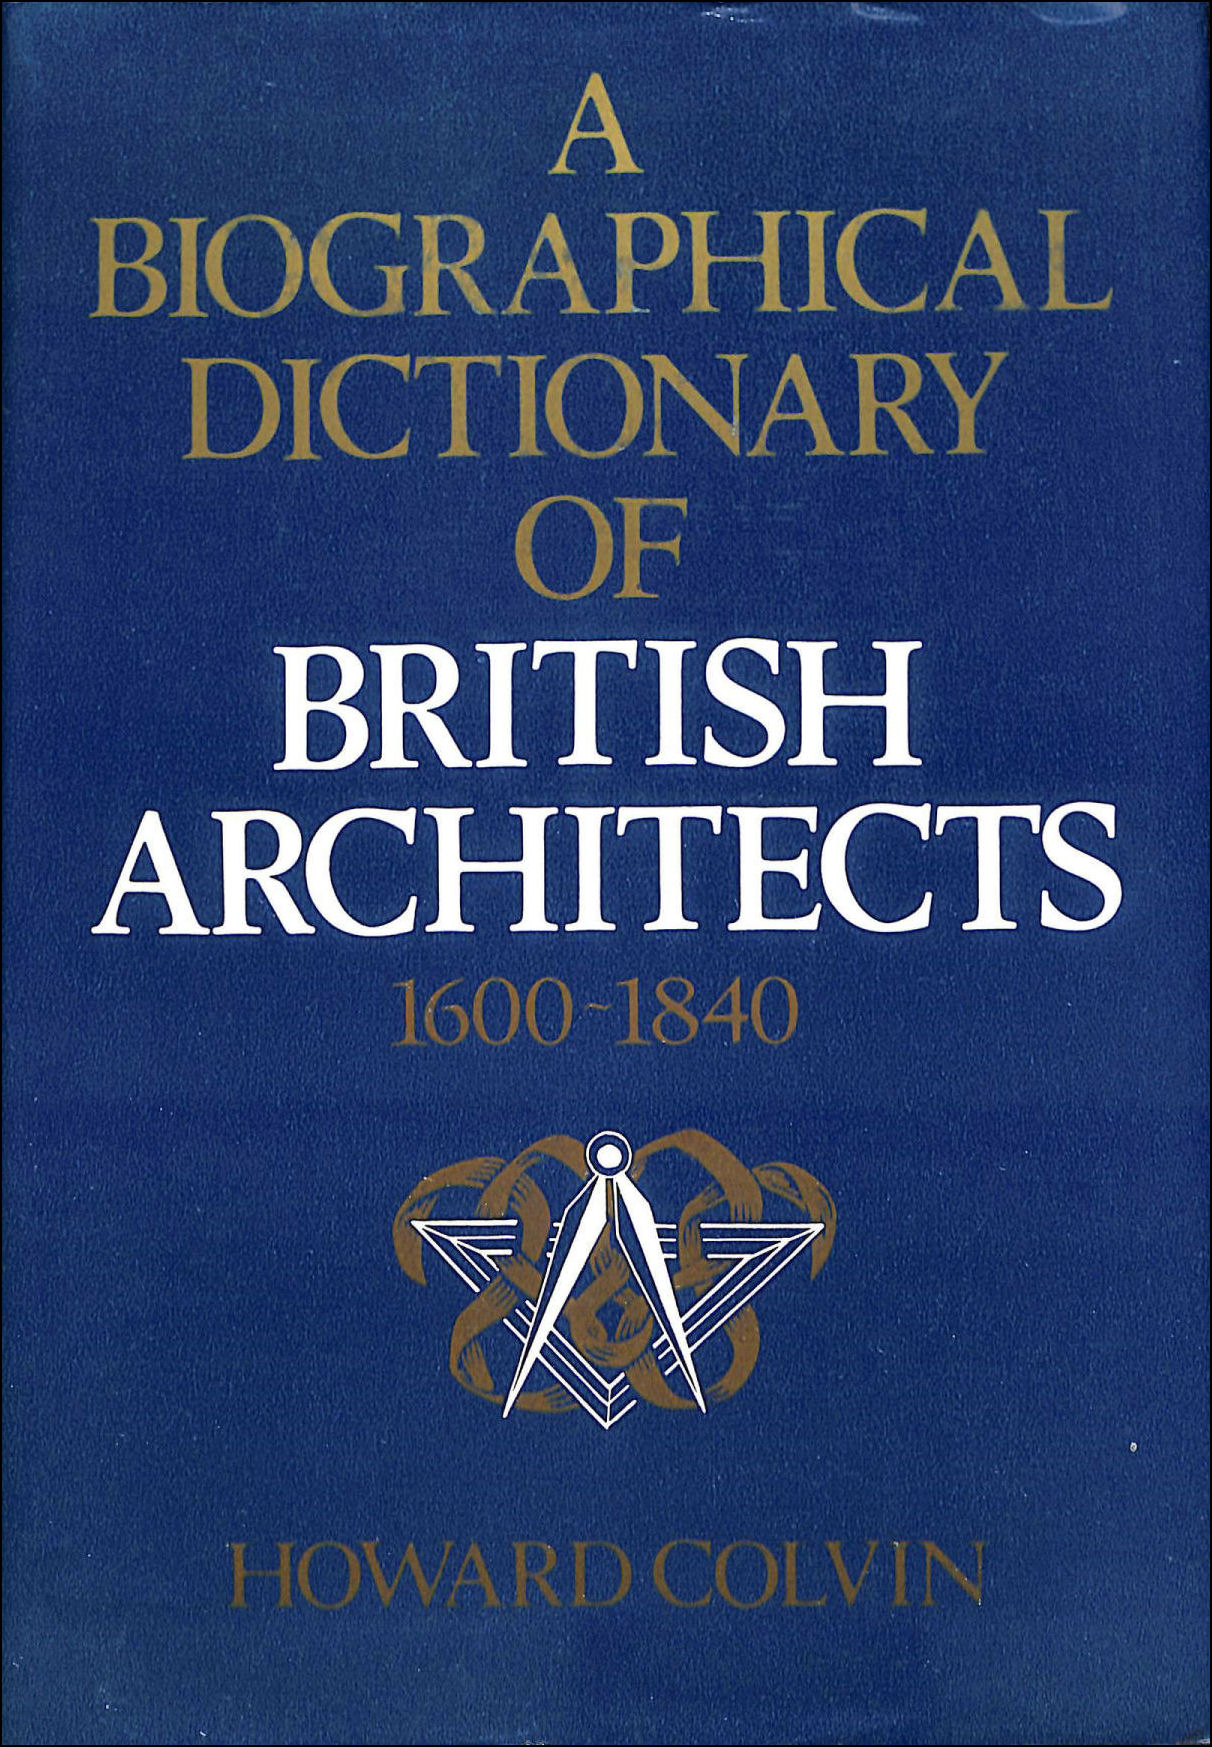 Image for A Biographical Dictionary of British Architects, 1600-1840